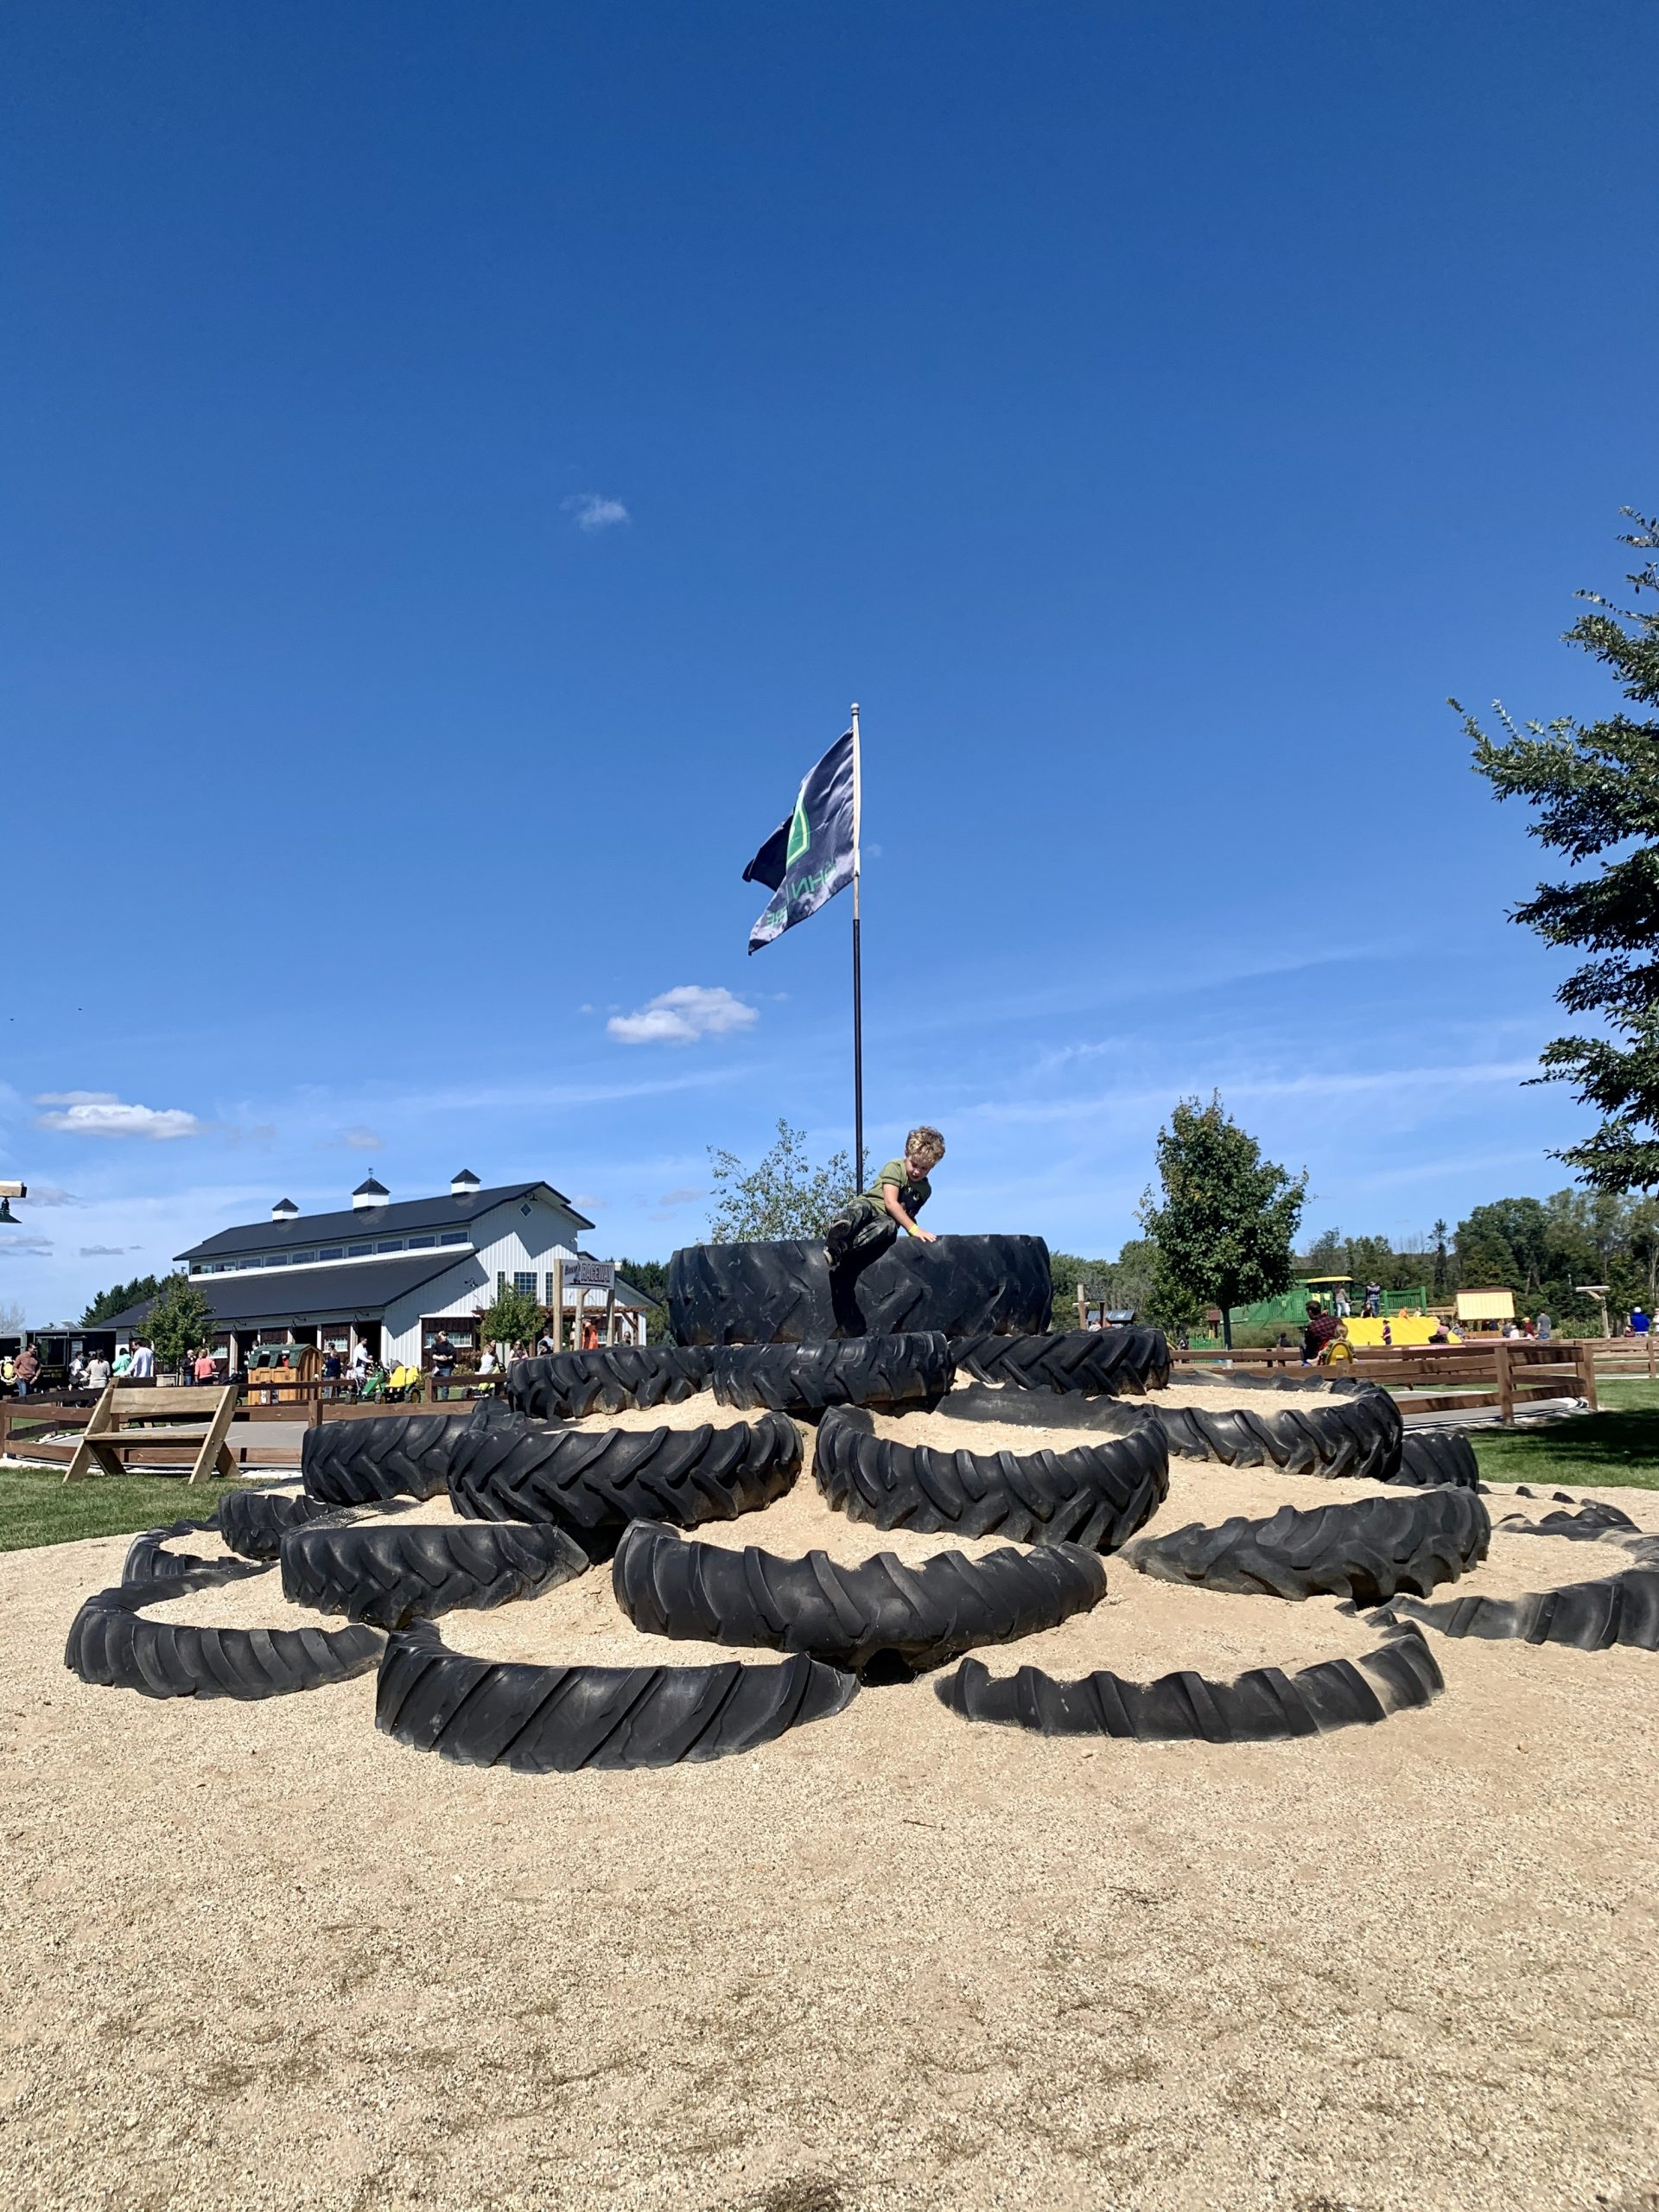 Kid climbing a giant tire mountain at Basse's